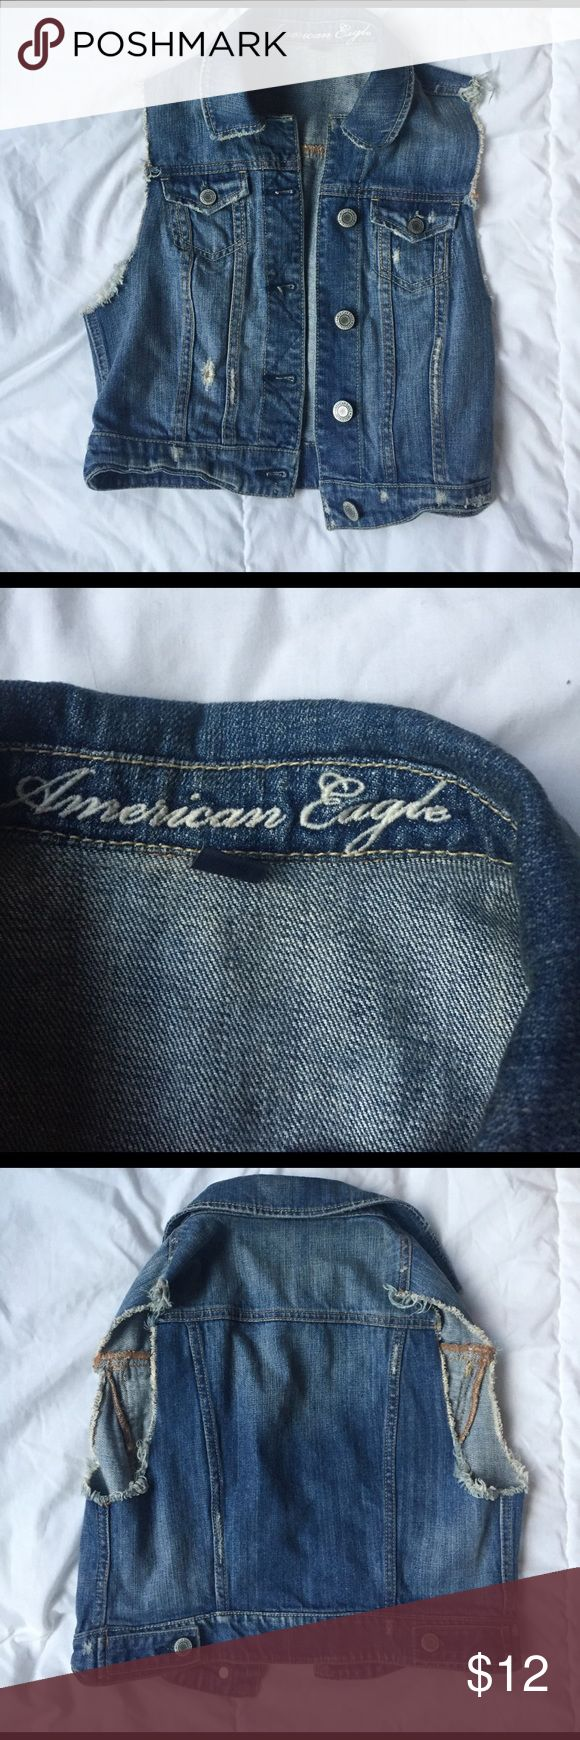 american eagle jean jacket vest size XS cute jean jacket vest size XS from american eagle. American Eagle Outfitters Tops